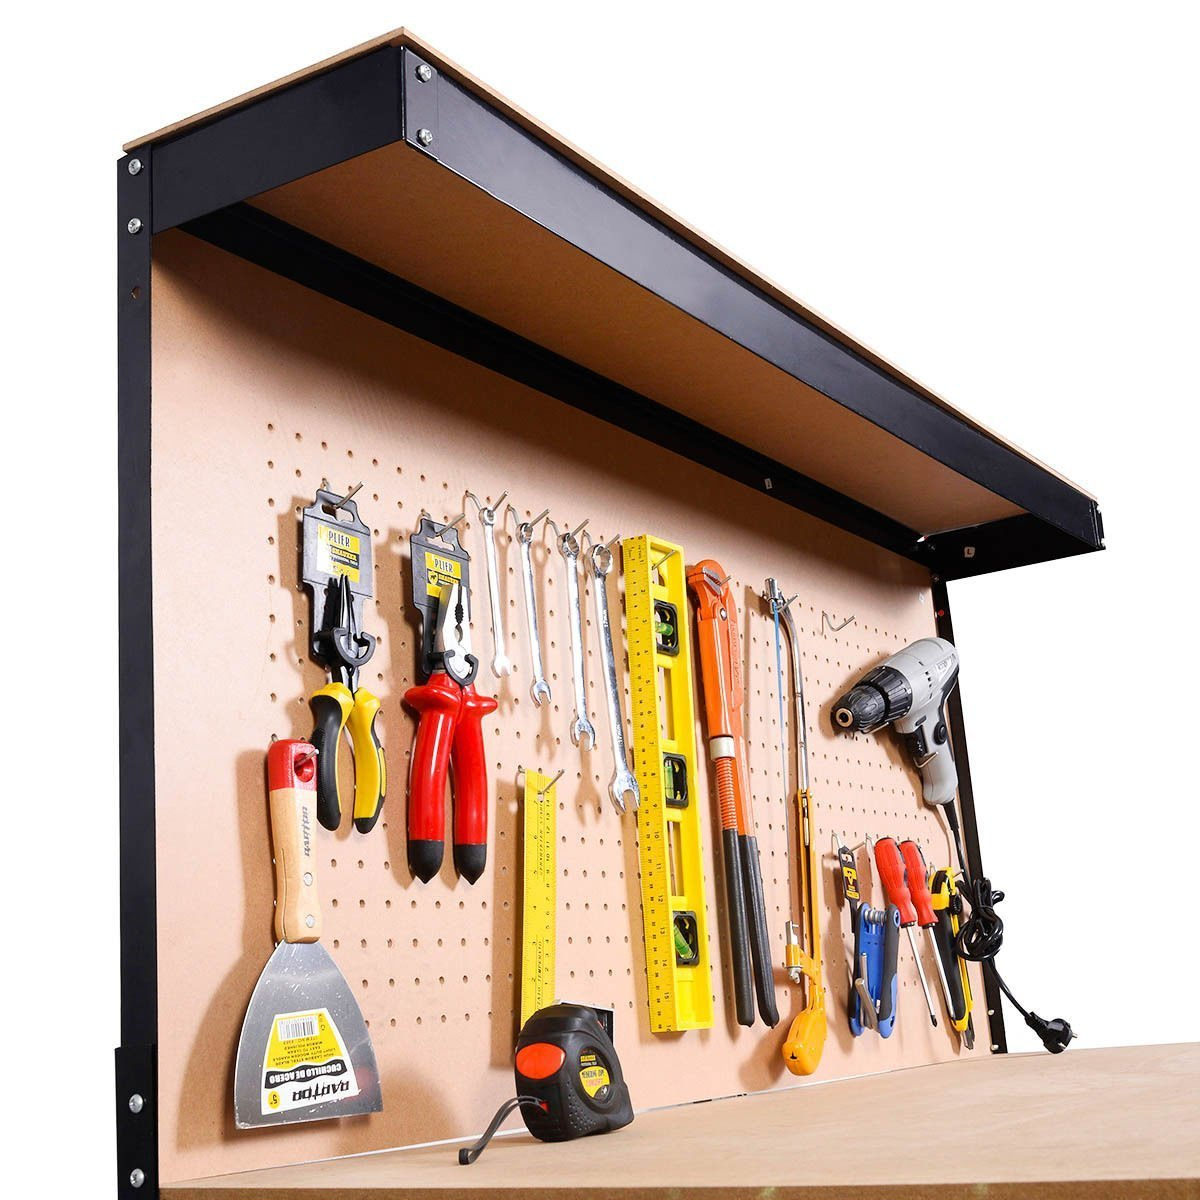 Work Bench Tool Storage Steel Frame Tool Workshop Table W/ Drawer and Peg Boar Bonus free ebook By Allgoodsdelight365 by allgoodsdelight365 (Image #6)